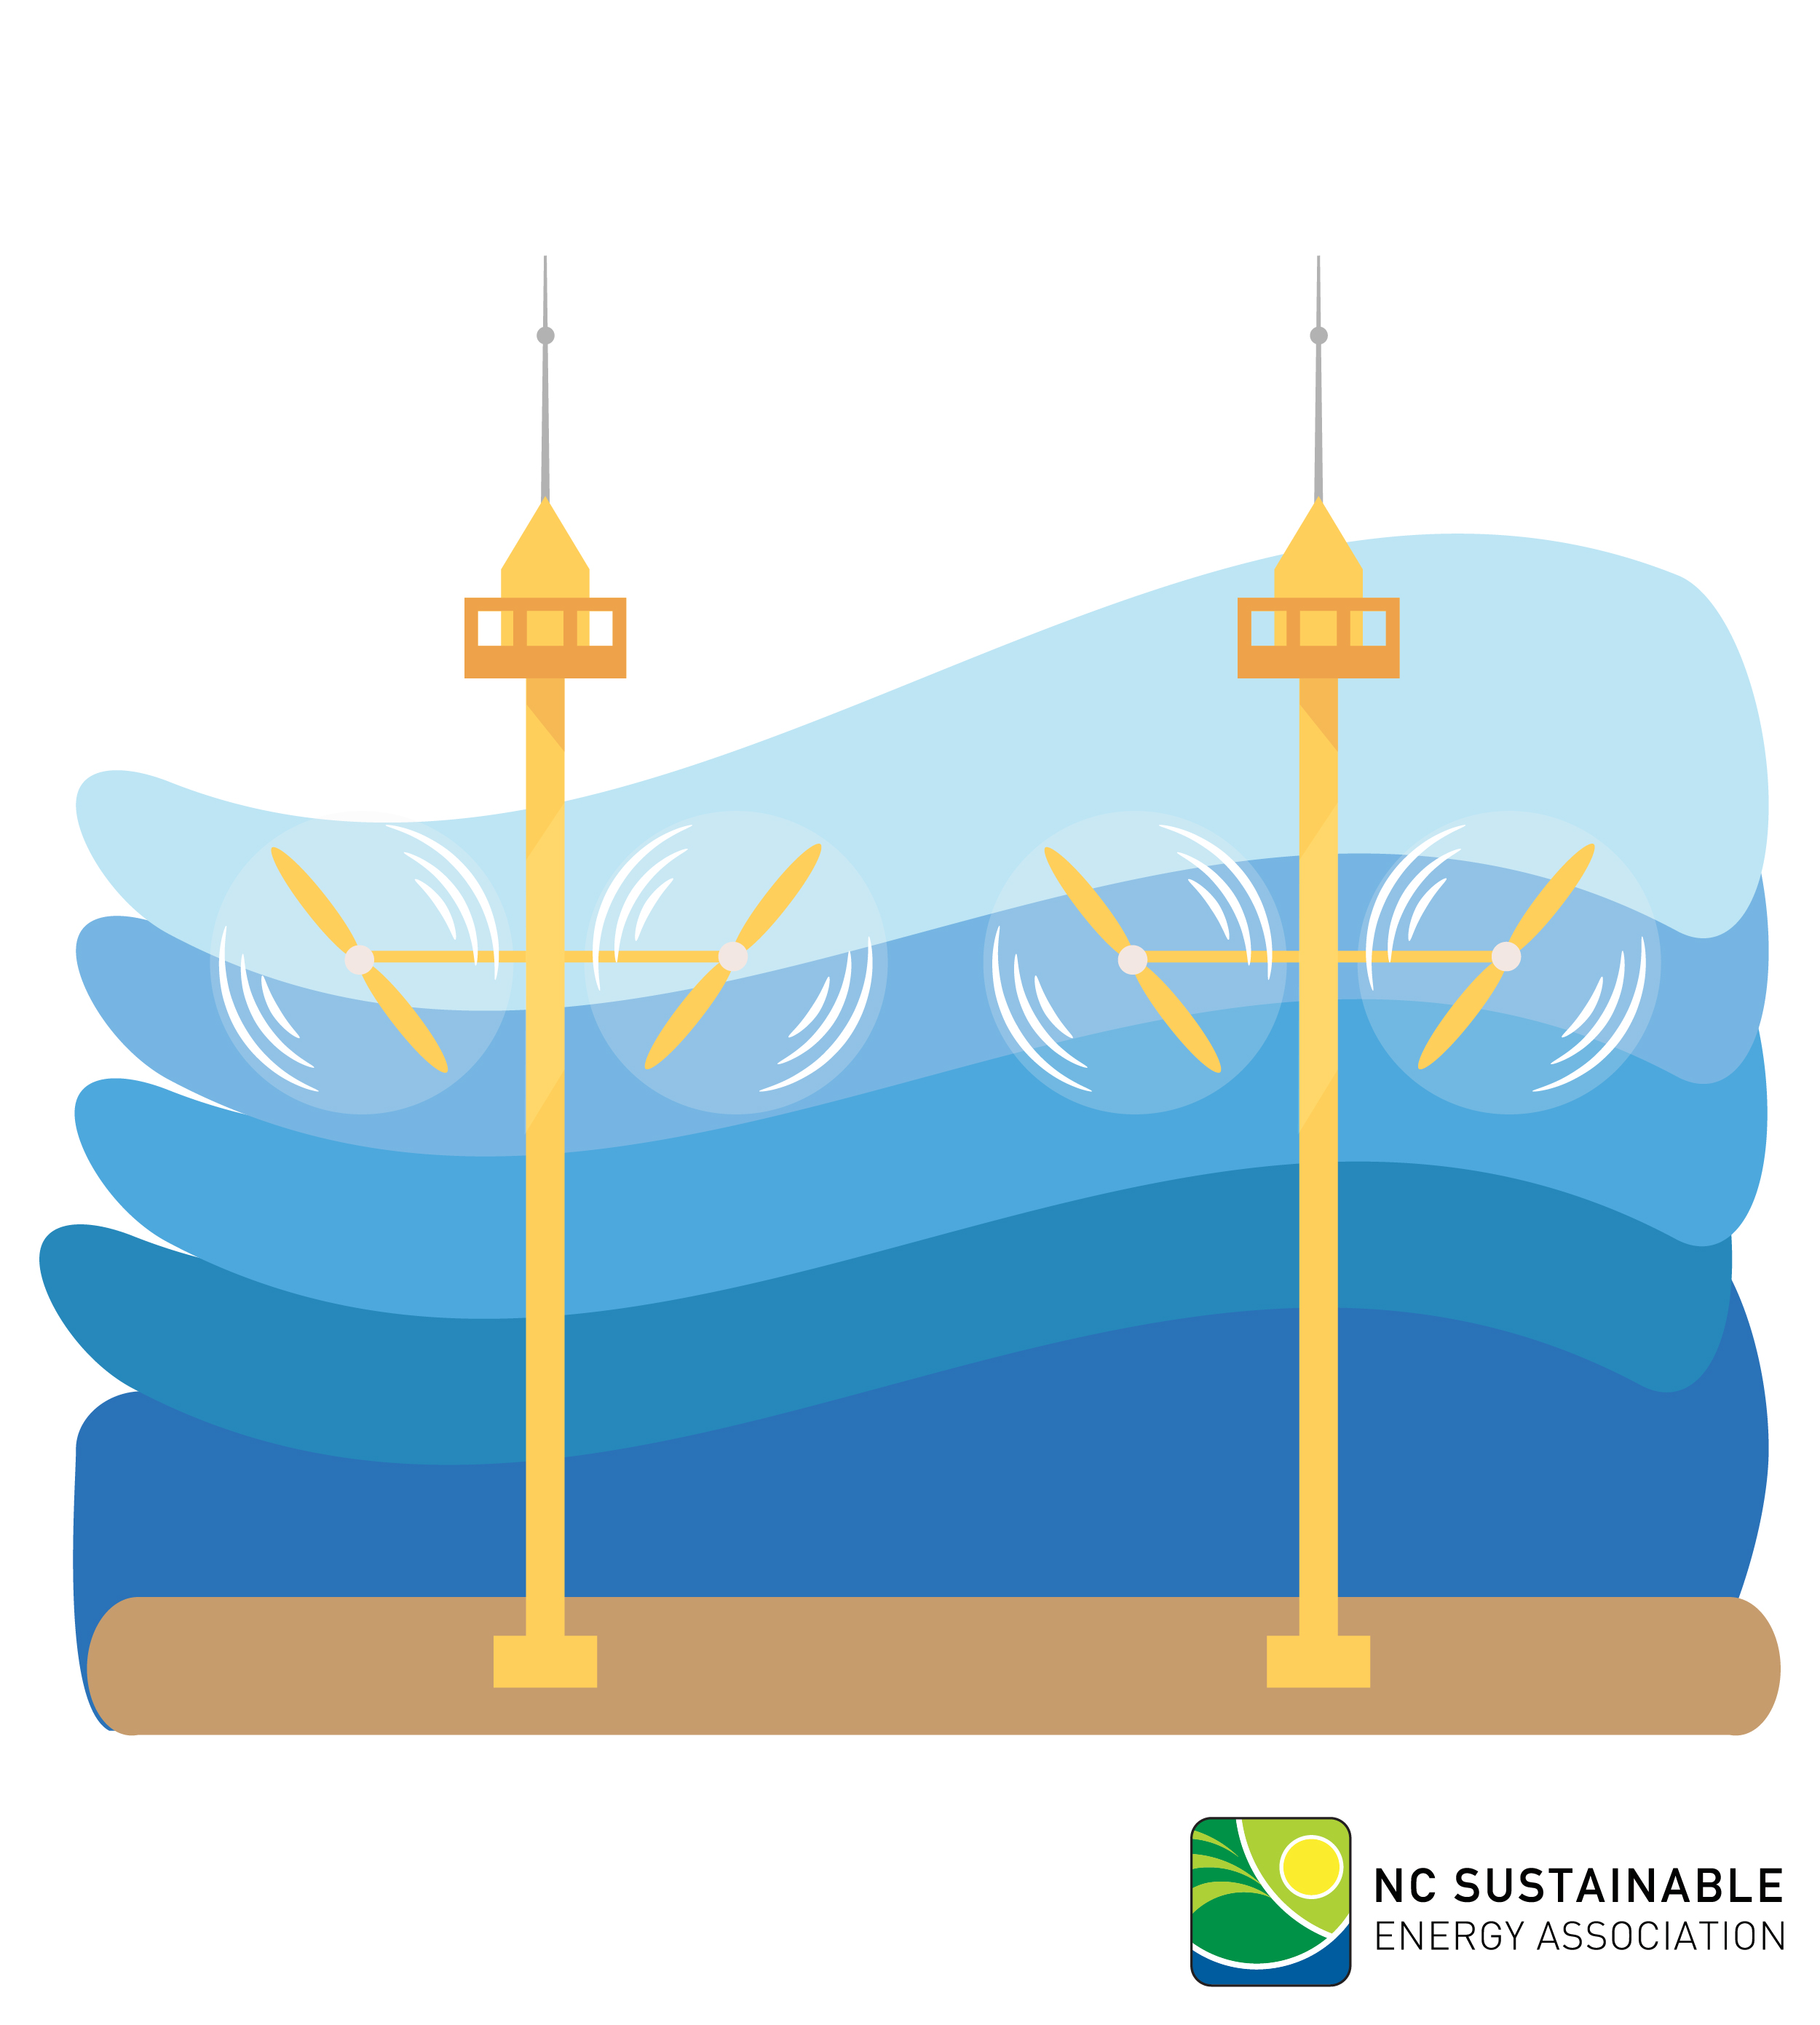 Waves clipart wave energy. Hydropower marine nc sustainable